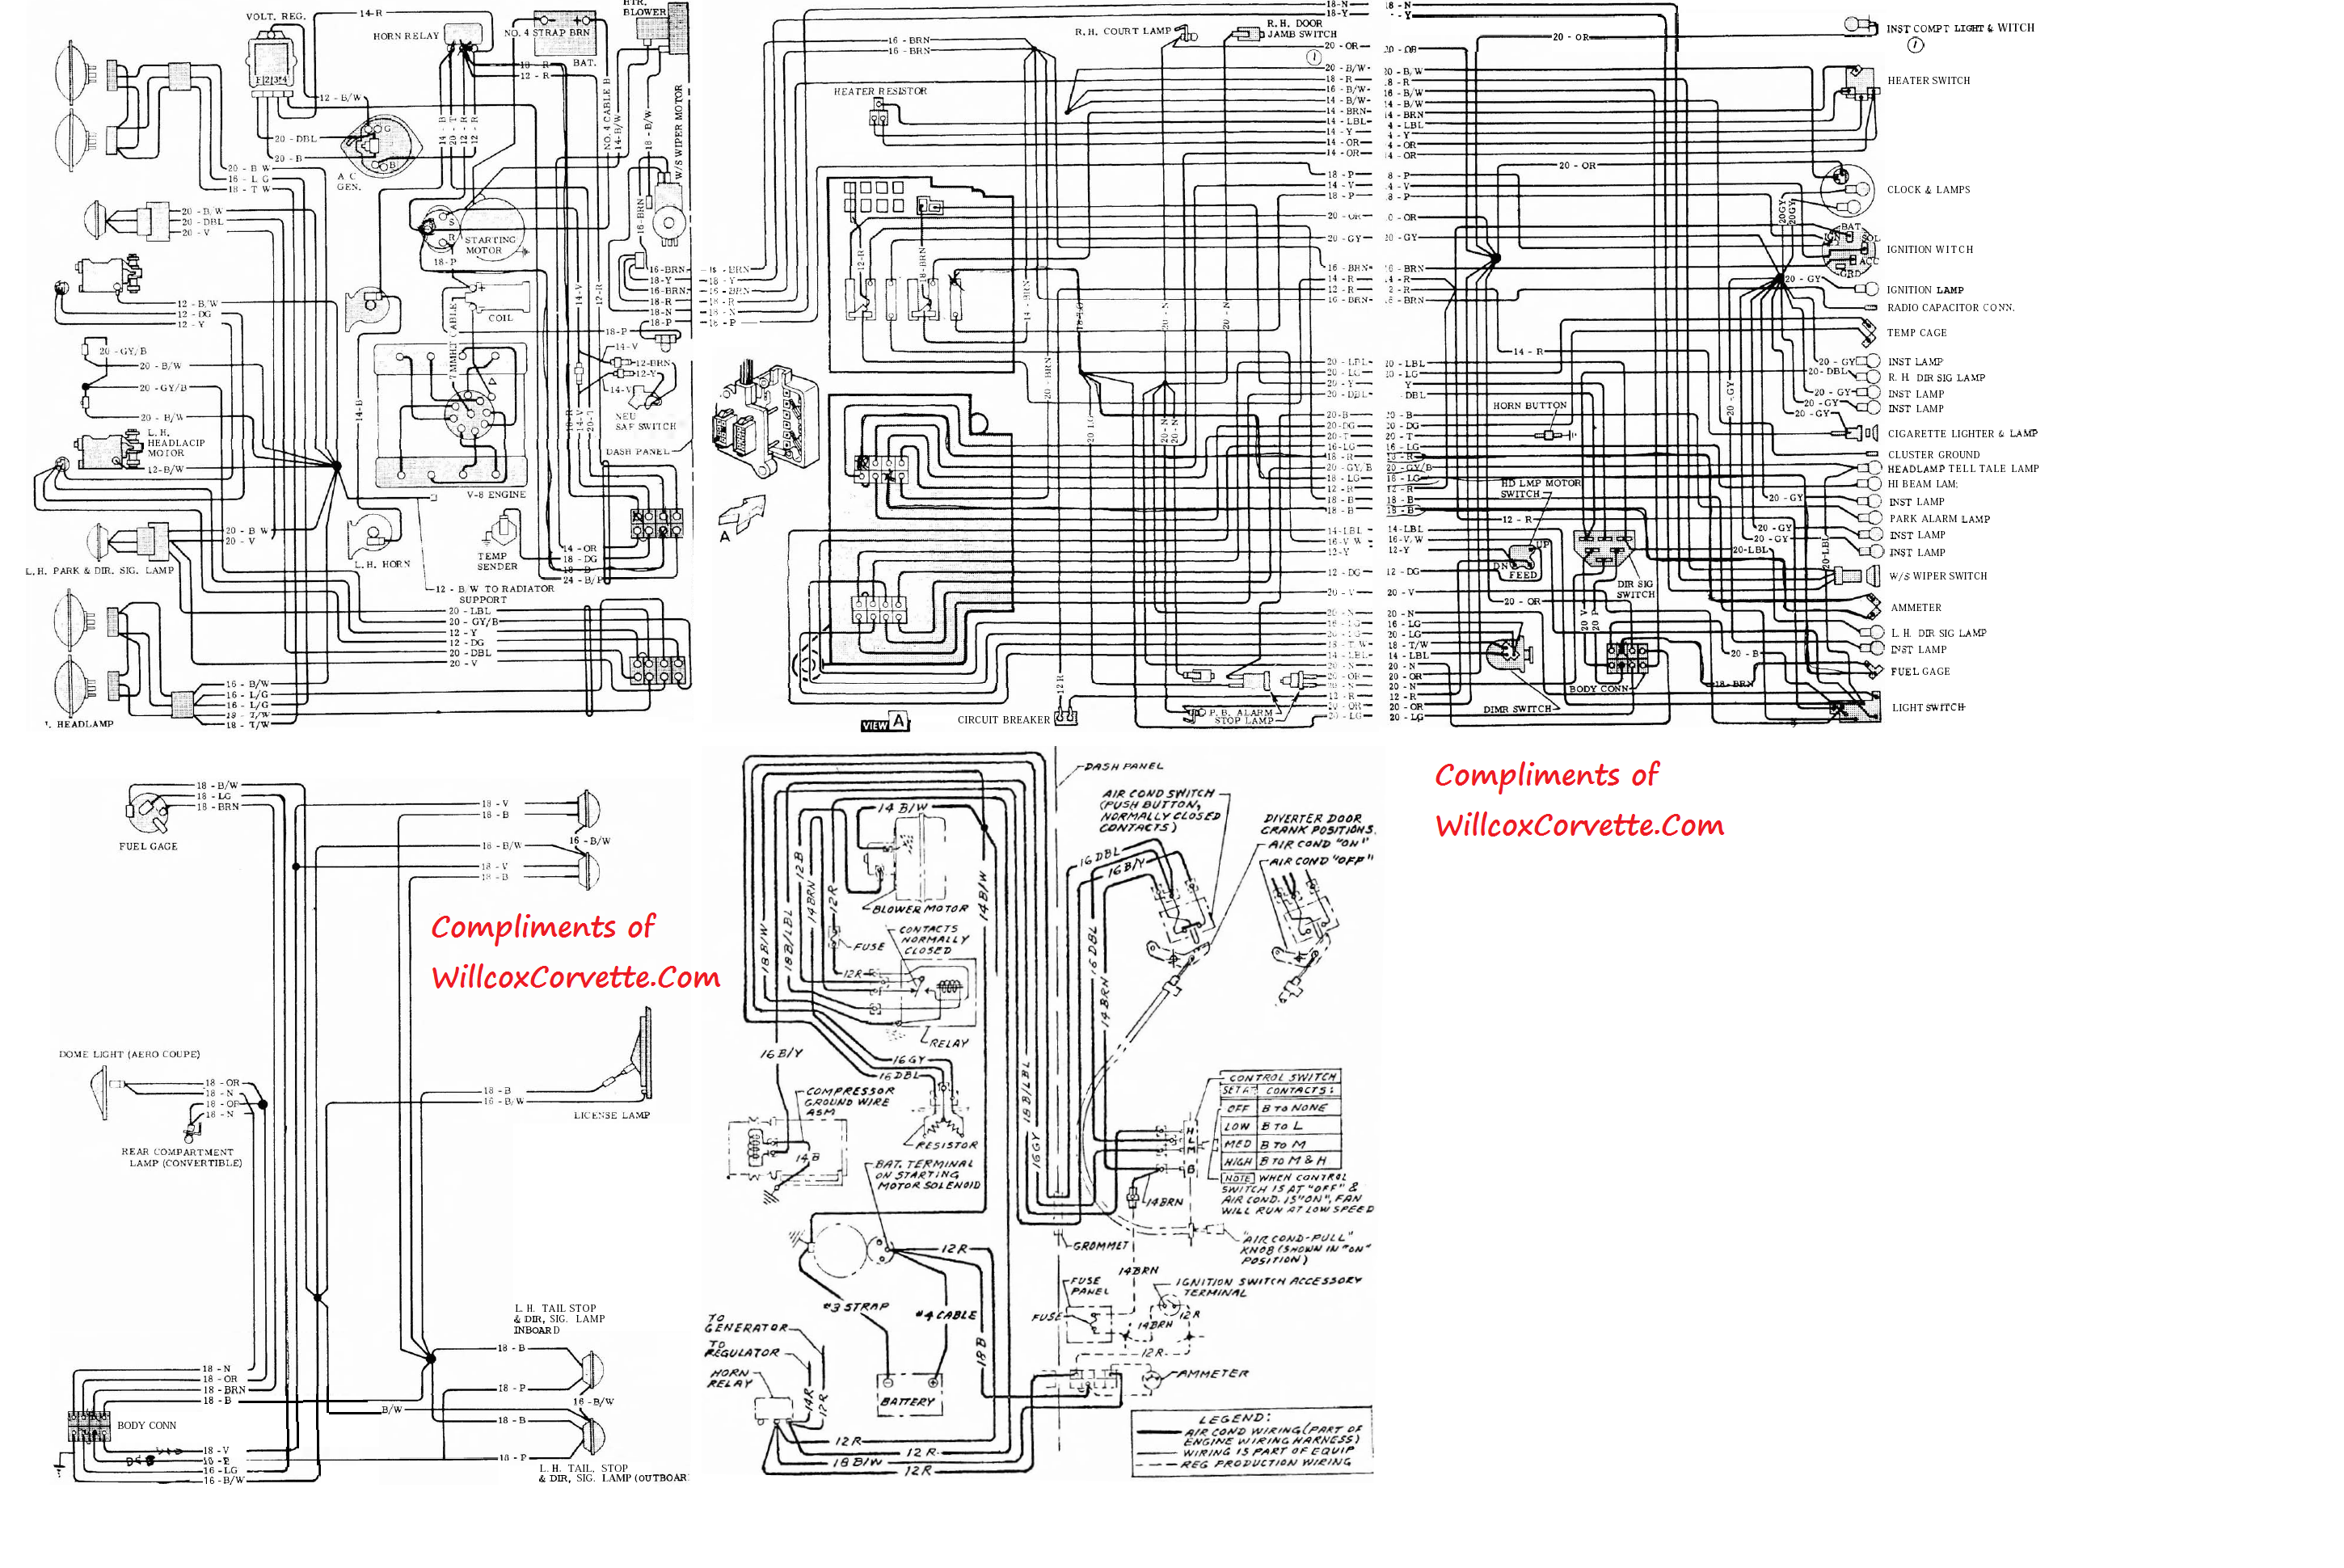 1979 corvette wiring diagram download   37 wiring diagram